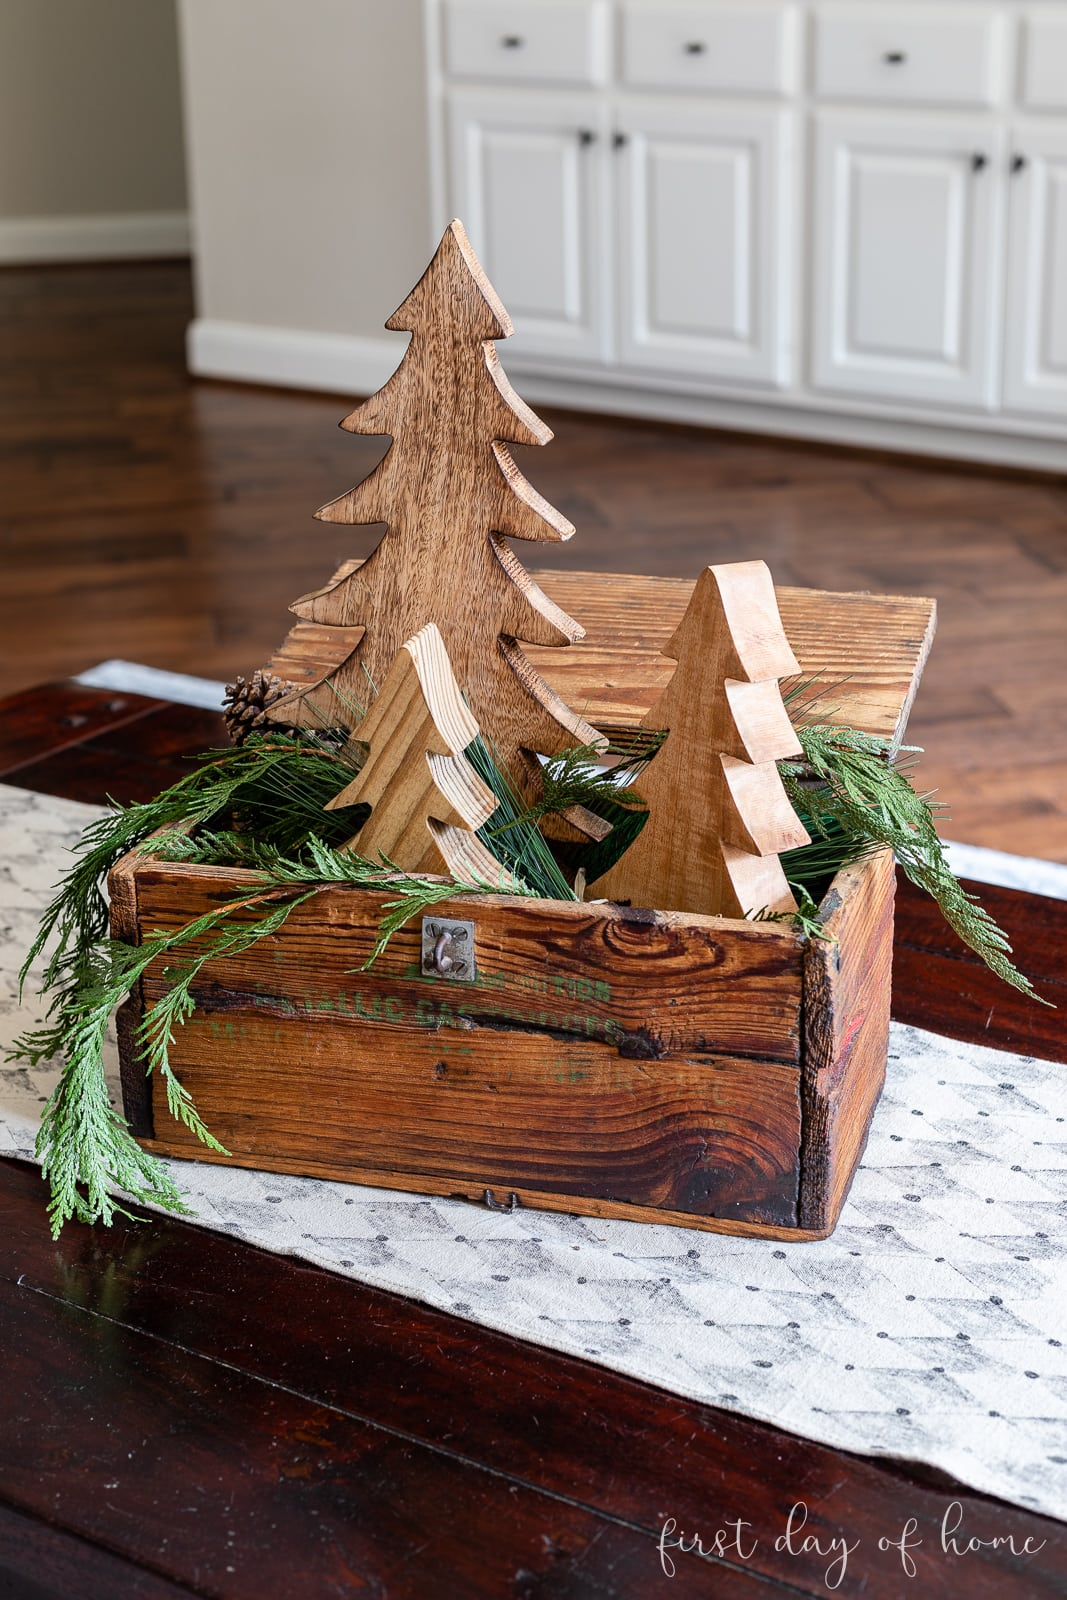 Wooden Christmas box filled with wooden trees and cedar garland